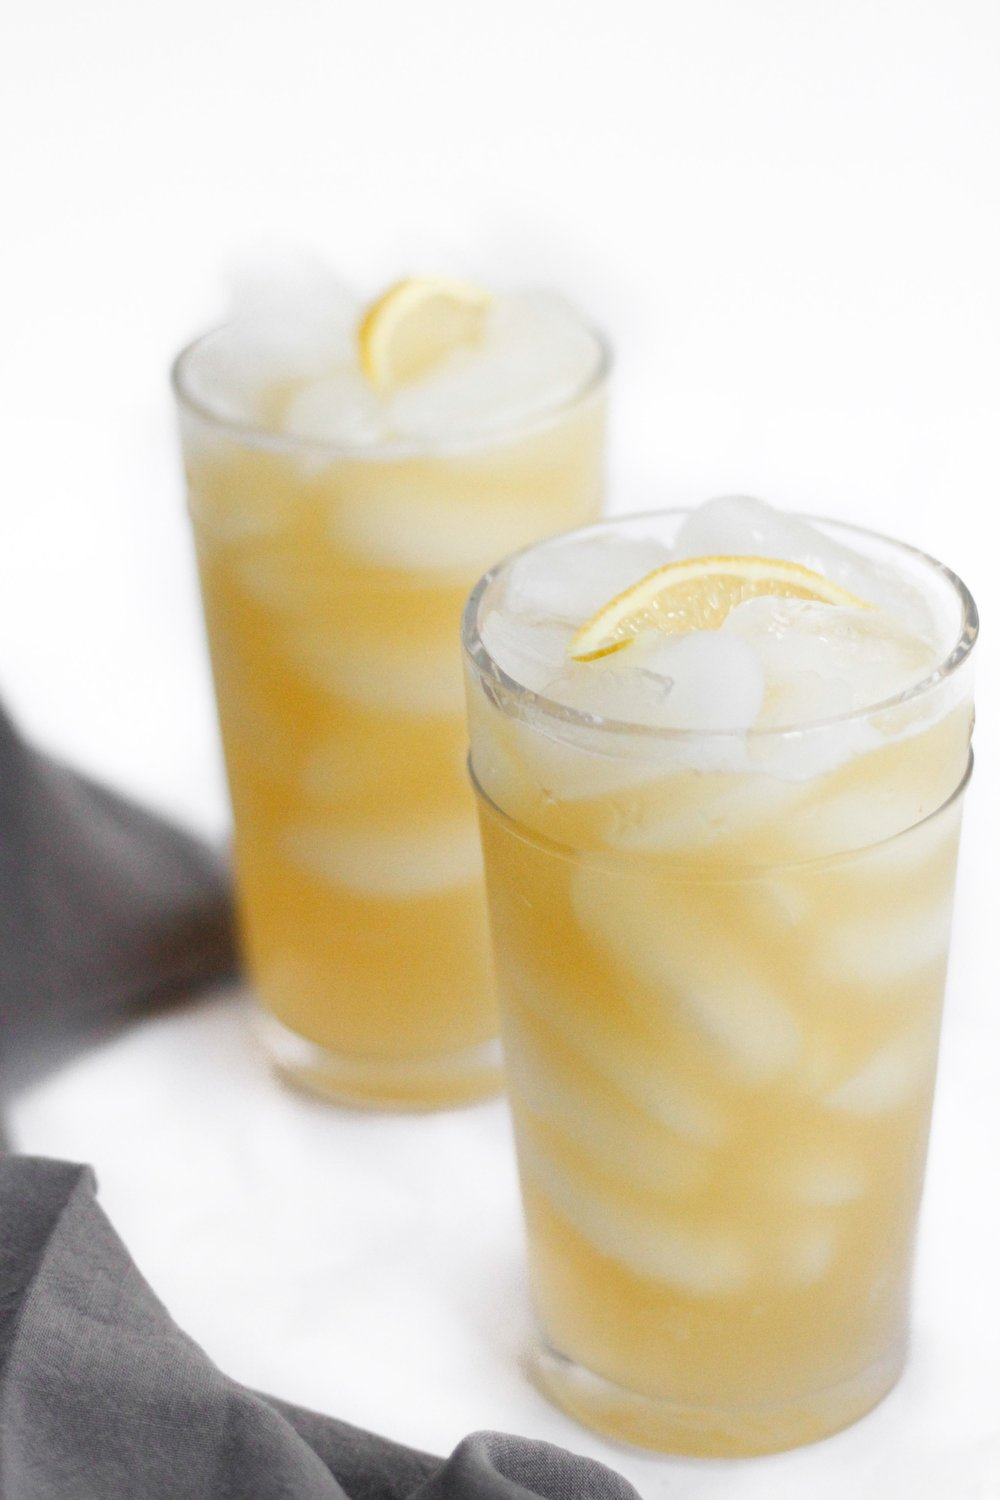 Whiskey pineapple cocktail